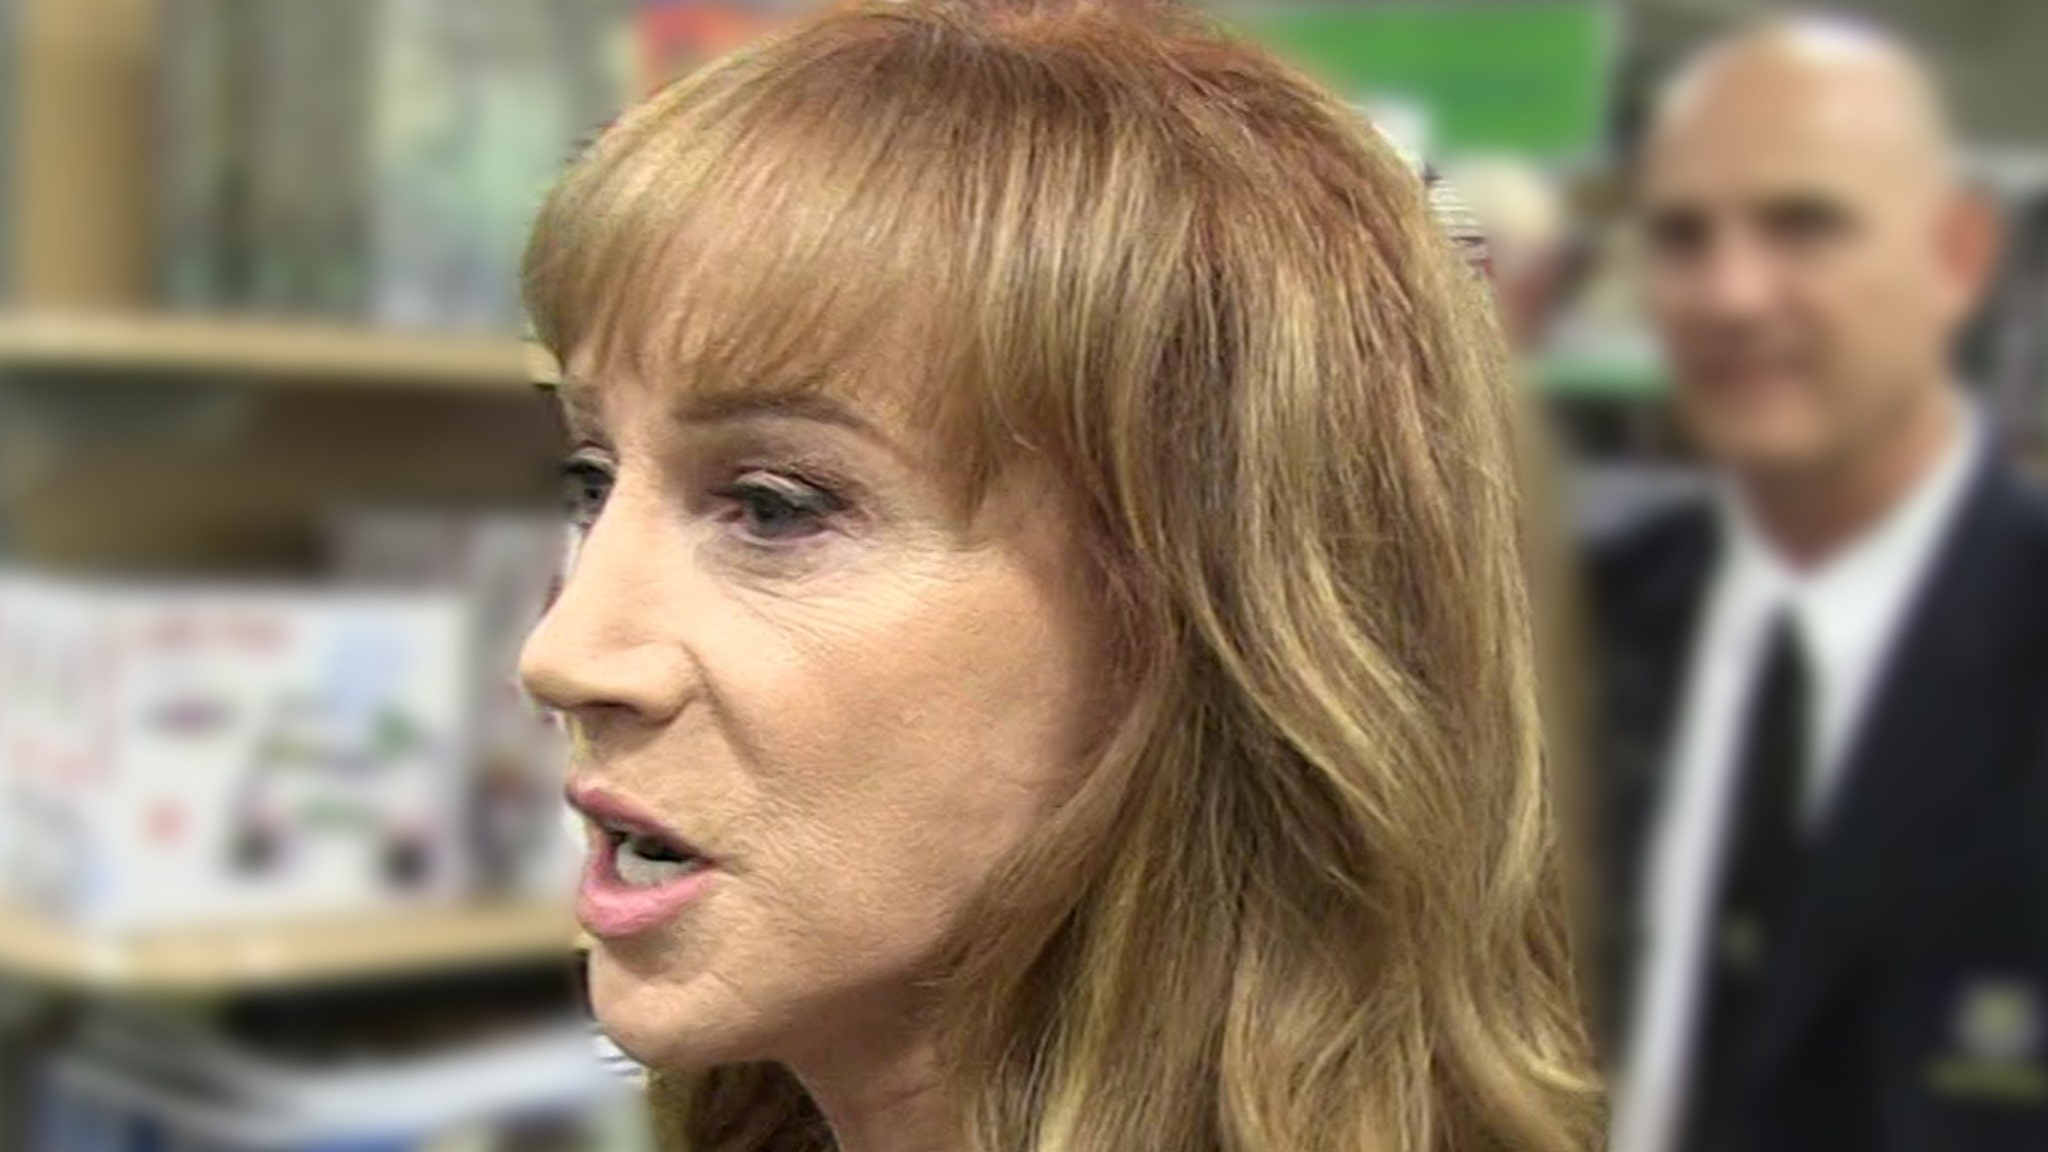 Kathy Griffin Has Lung Cancer, Undergoing Surgery to Remove It